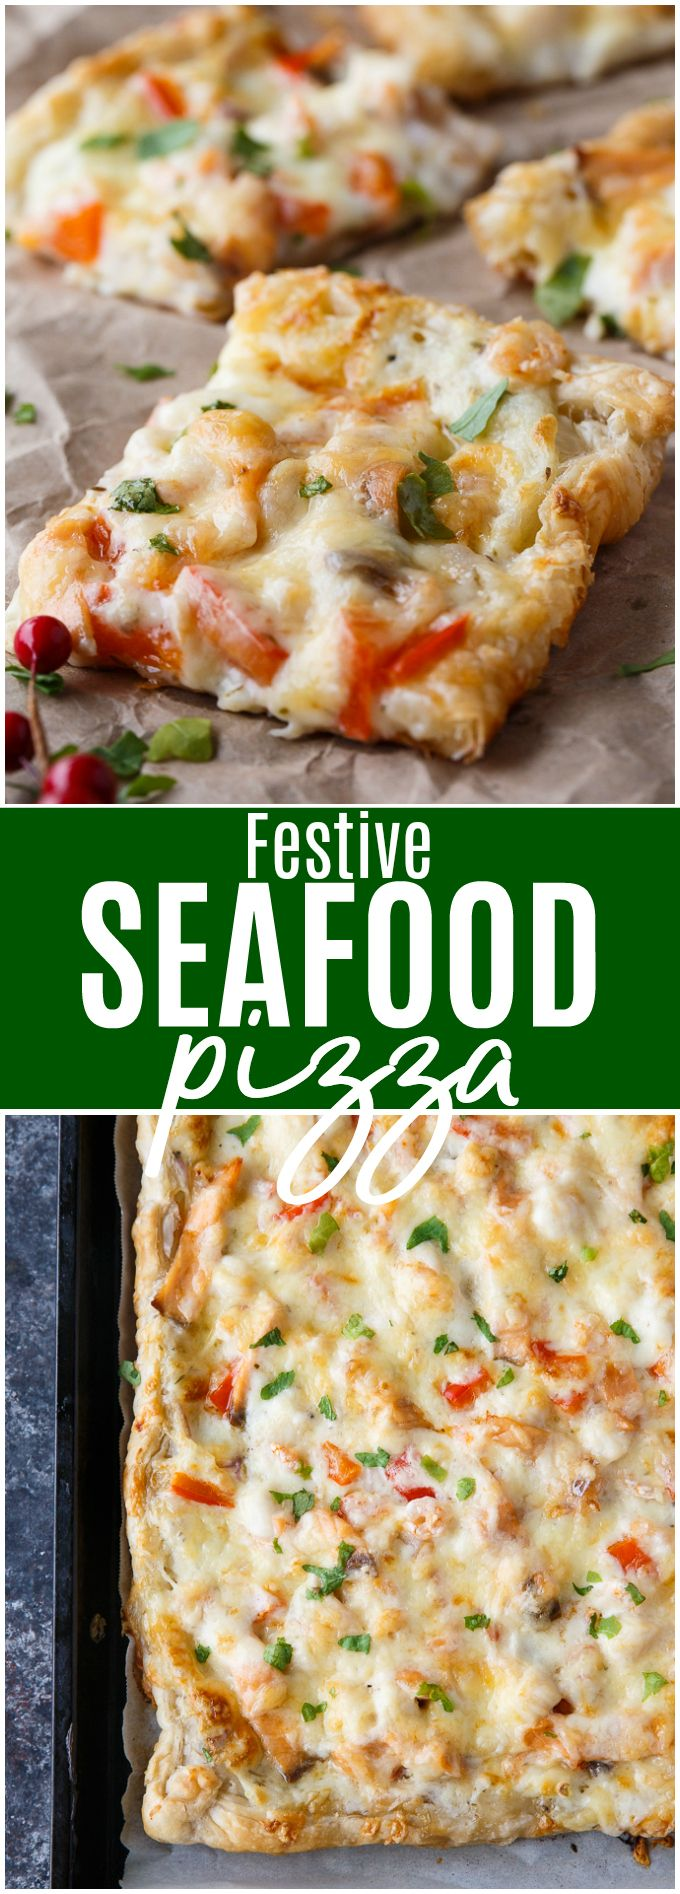 Festive Seafood Pizza – Serve this easy recipe as a holiday appetizer or as a main course paired with a green salad. Look for it in the 2018 #MilkCalendar from the Dairy Farmers of Canada #ad